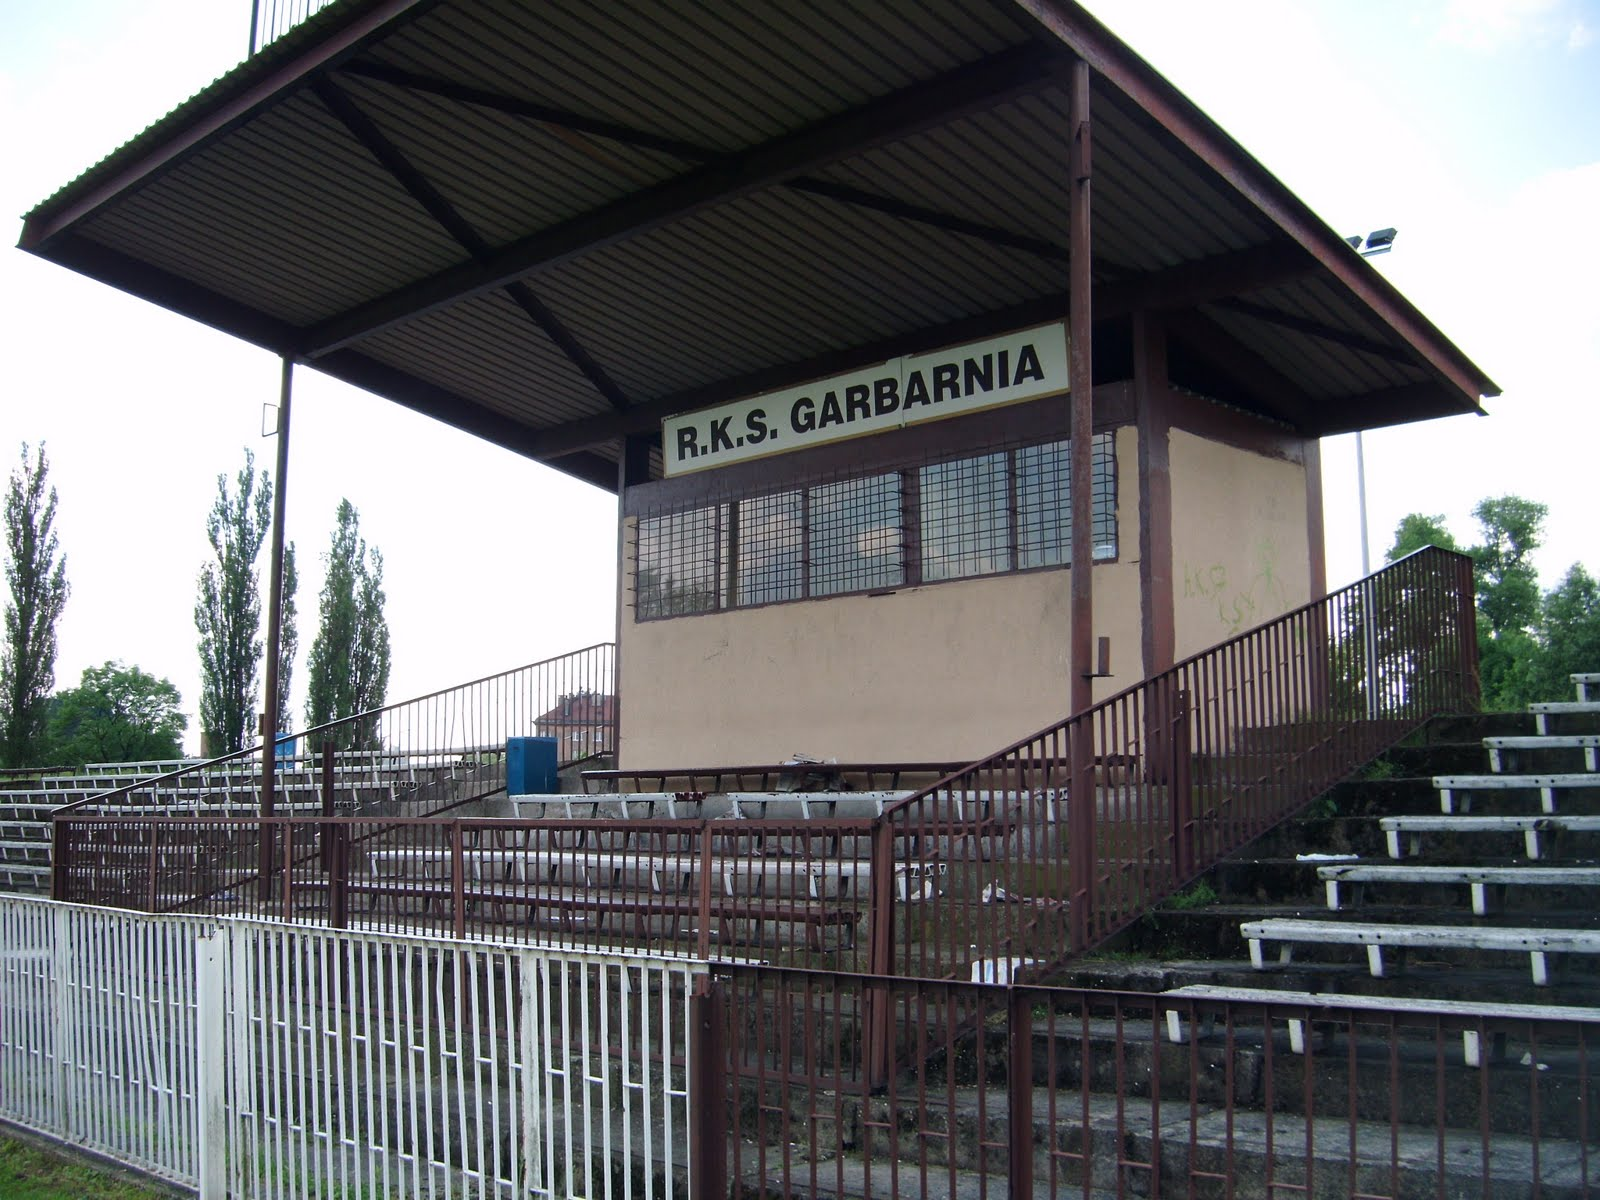 My Football Travels: Stadion Garbarni (Garbarnia Kraków)